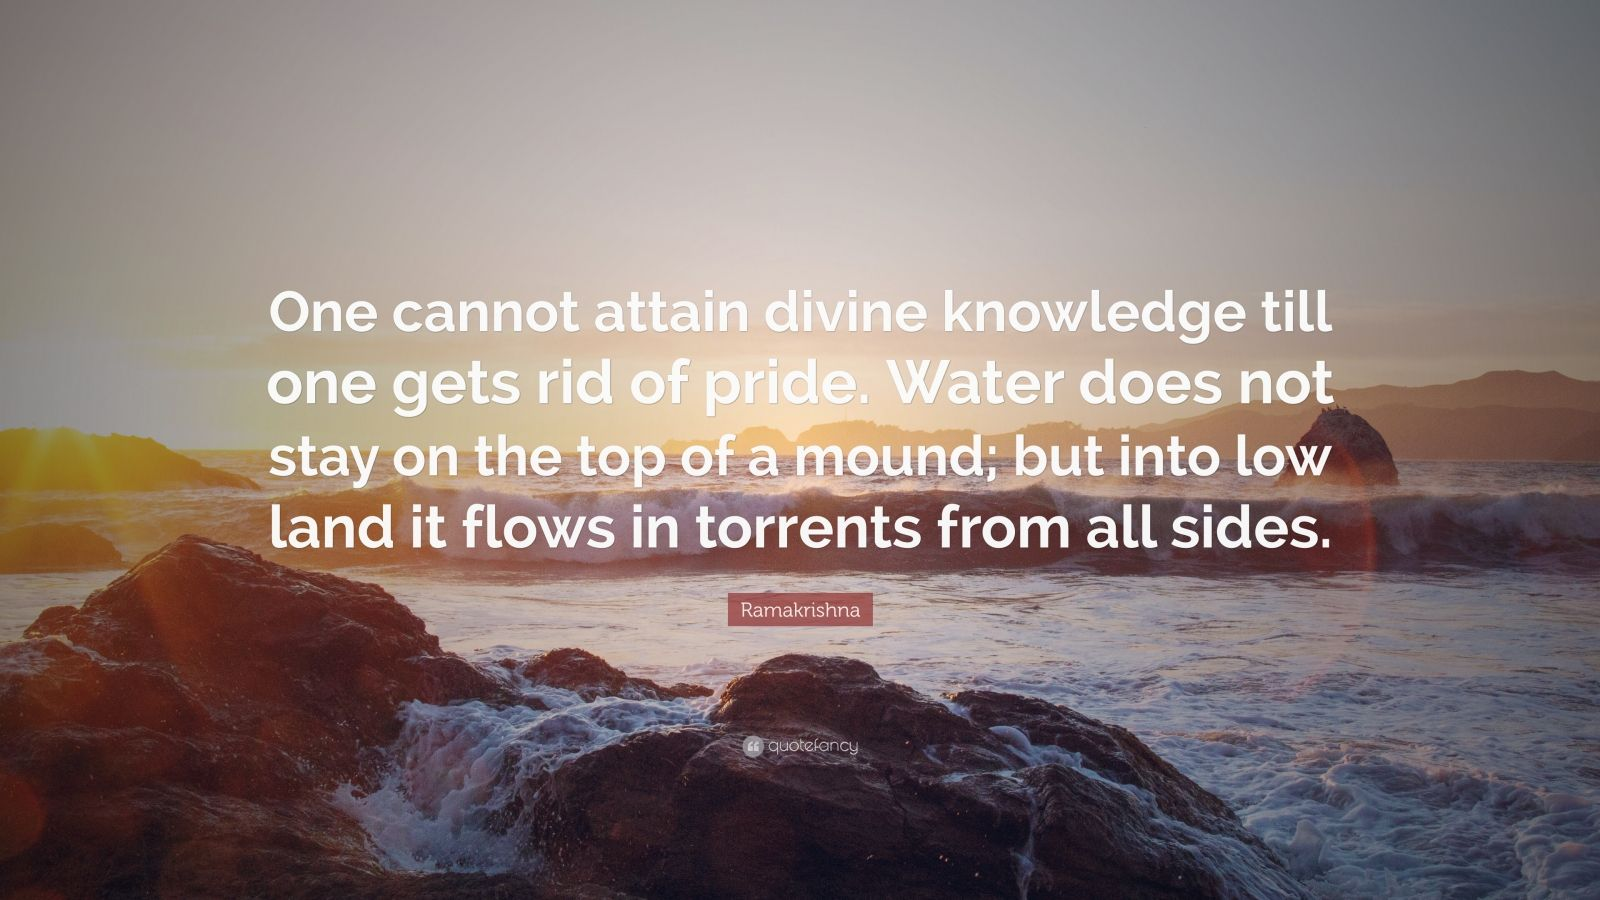 "Ramakrishna Quote: ""One cannot attain divine knowledge till one gets rid of pride. Water does not stay on the top of a mound; but into low land it flows in torrents from all sides."""